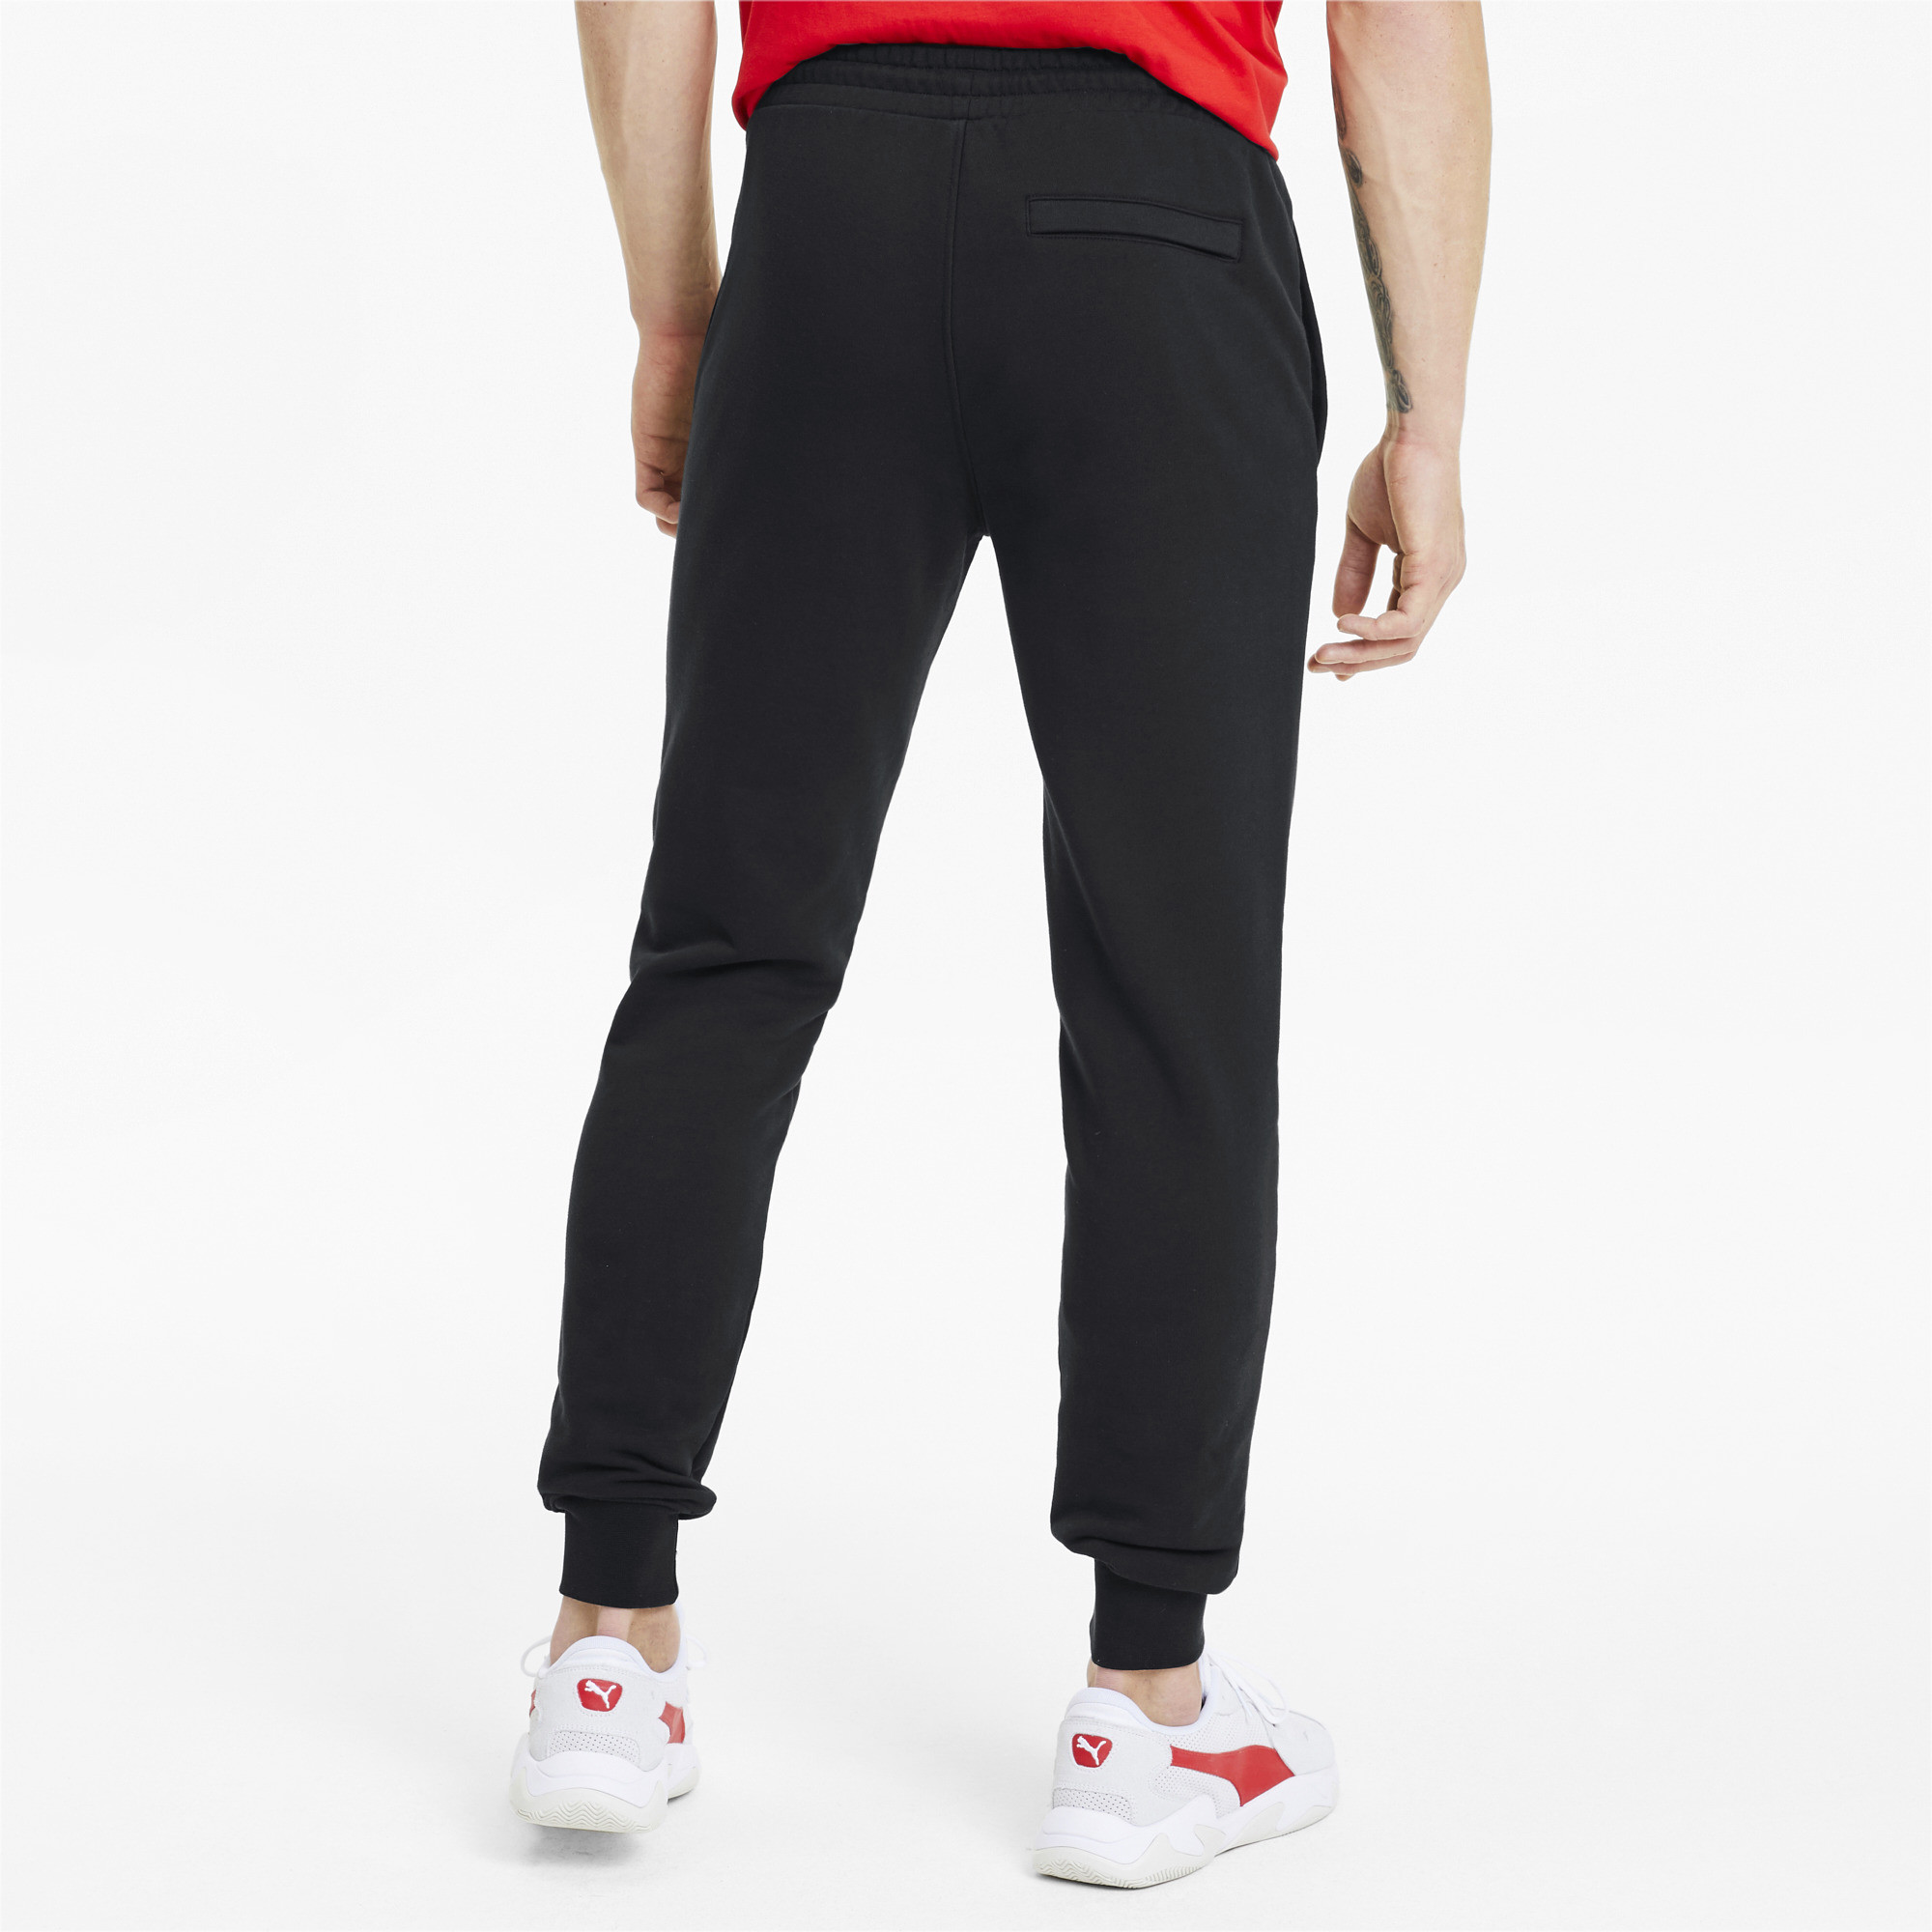 PUMA-Classics-Men-039-s-Cuffed-Sweatpants-Men-Knitted-Pants-Sport-Classics thumbnail 5